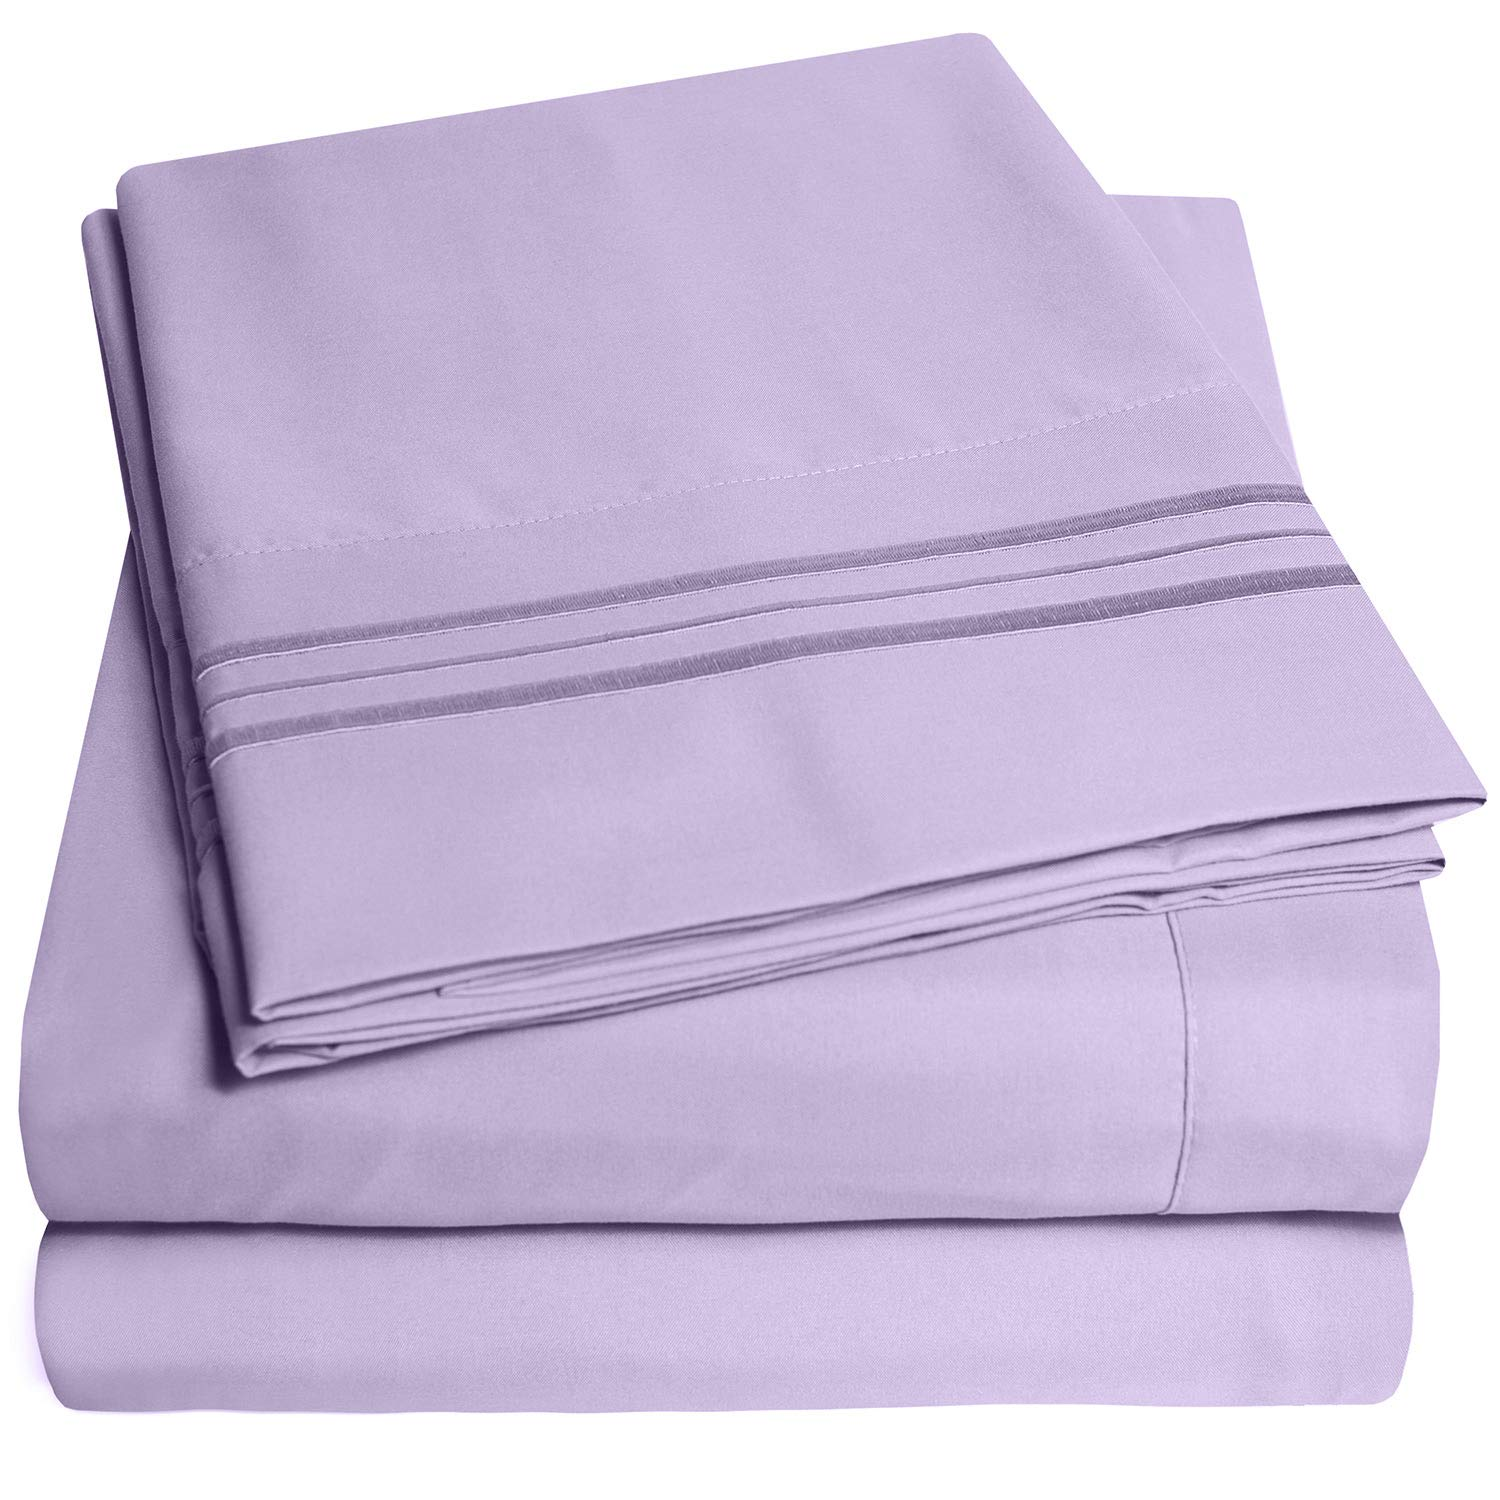 1500 Supreme Collection Bed Sheets Set - Luxury Hotel Style 4 Piece Extra Soft Sheet Set - Deep Pocket Wrinkle Free Hypoallergenic Bedding - Over 40+ Colors - Full, Lavender